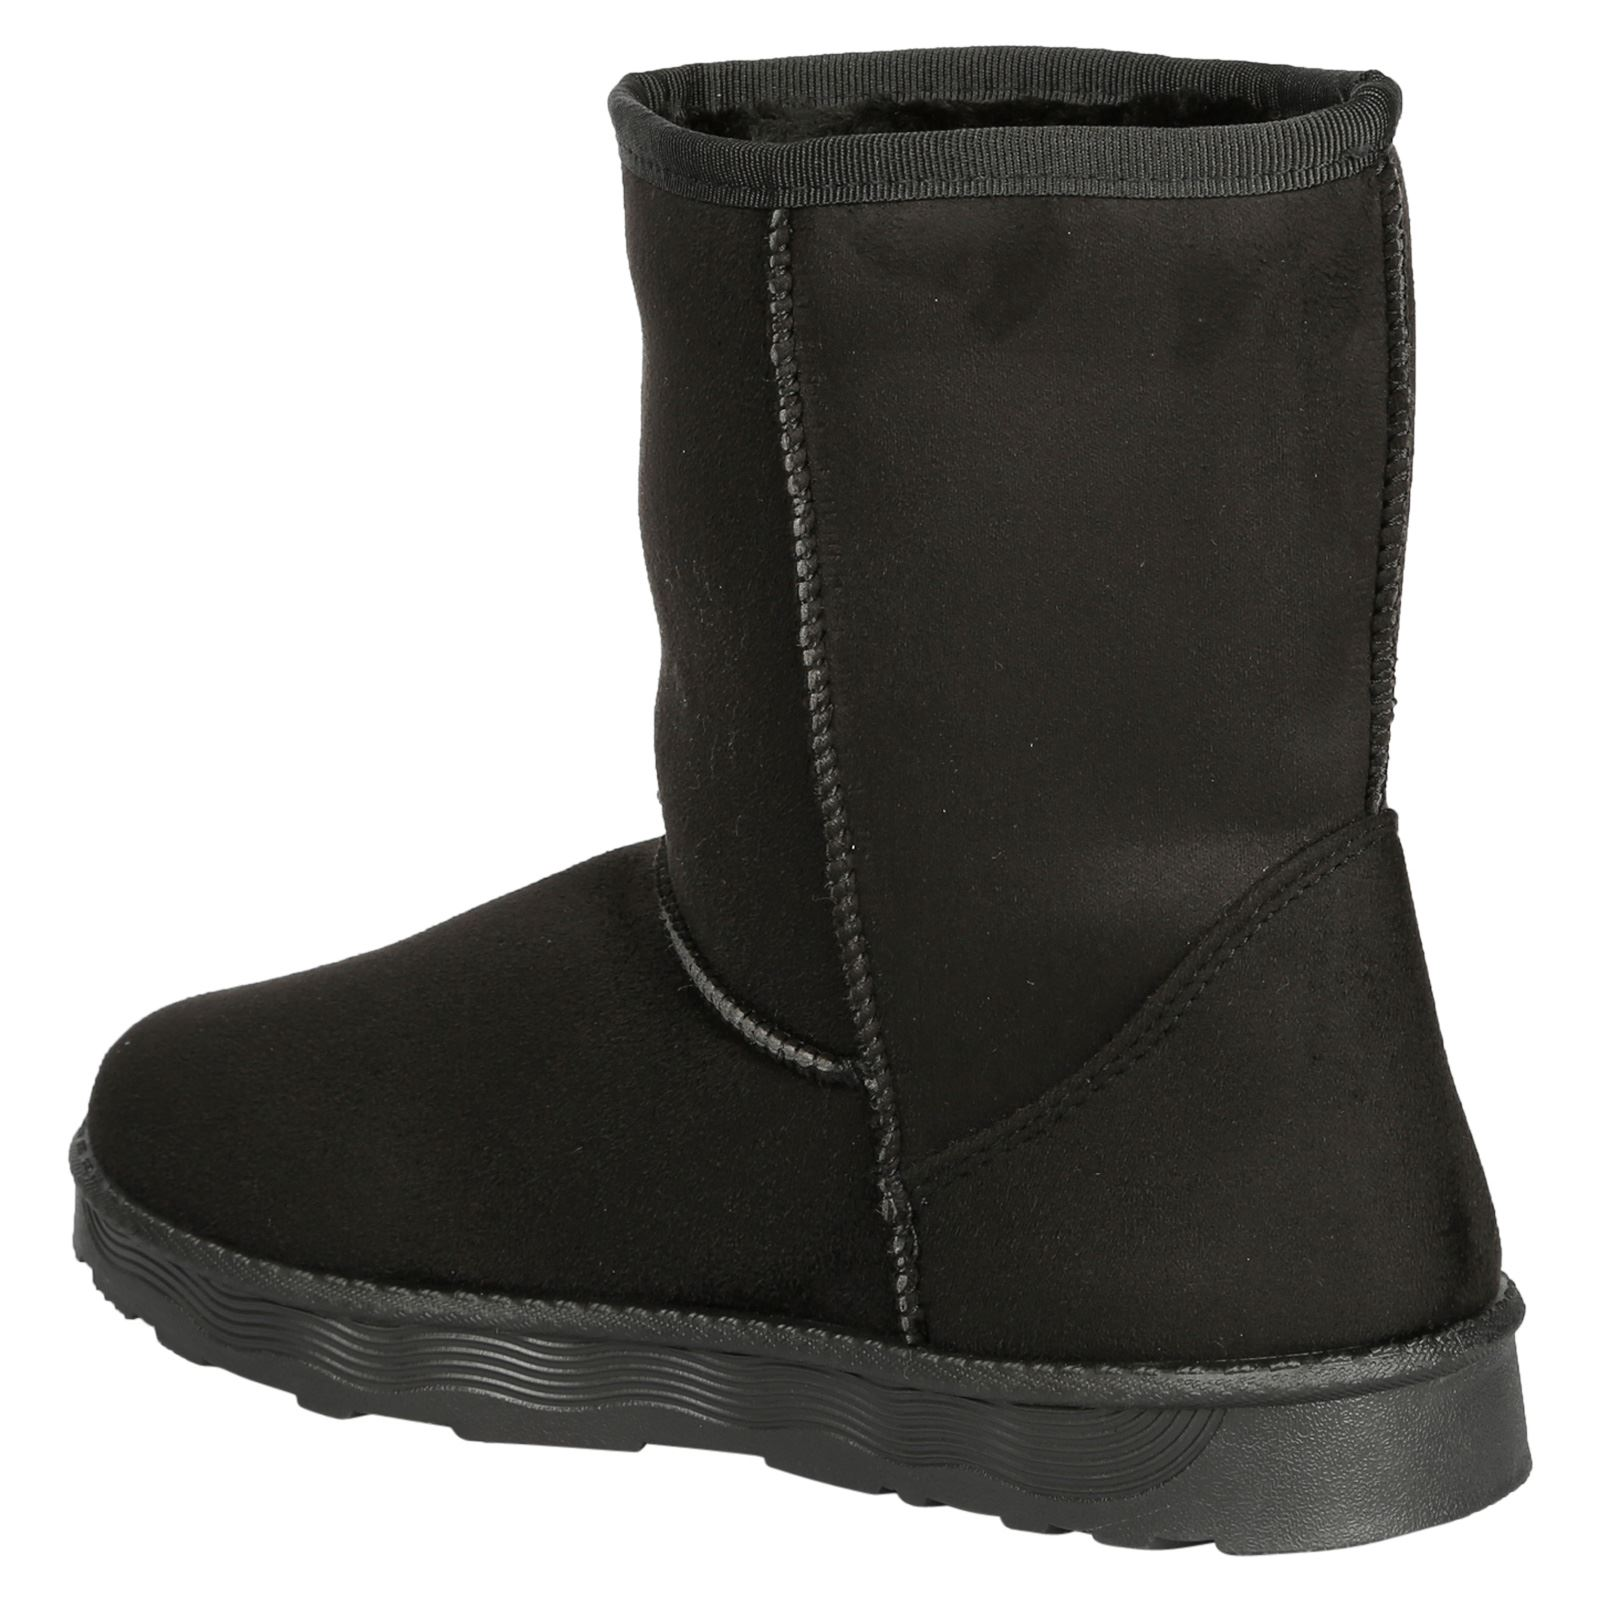 Paisleigh-Womens-Platfrom-Flat-Fur-Lined-Pull-On-Snug-Snow-Boots-Casual-Ladies thumbnail 5